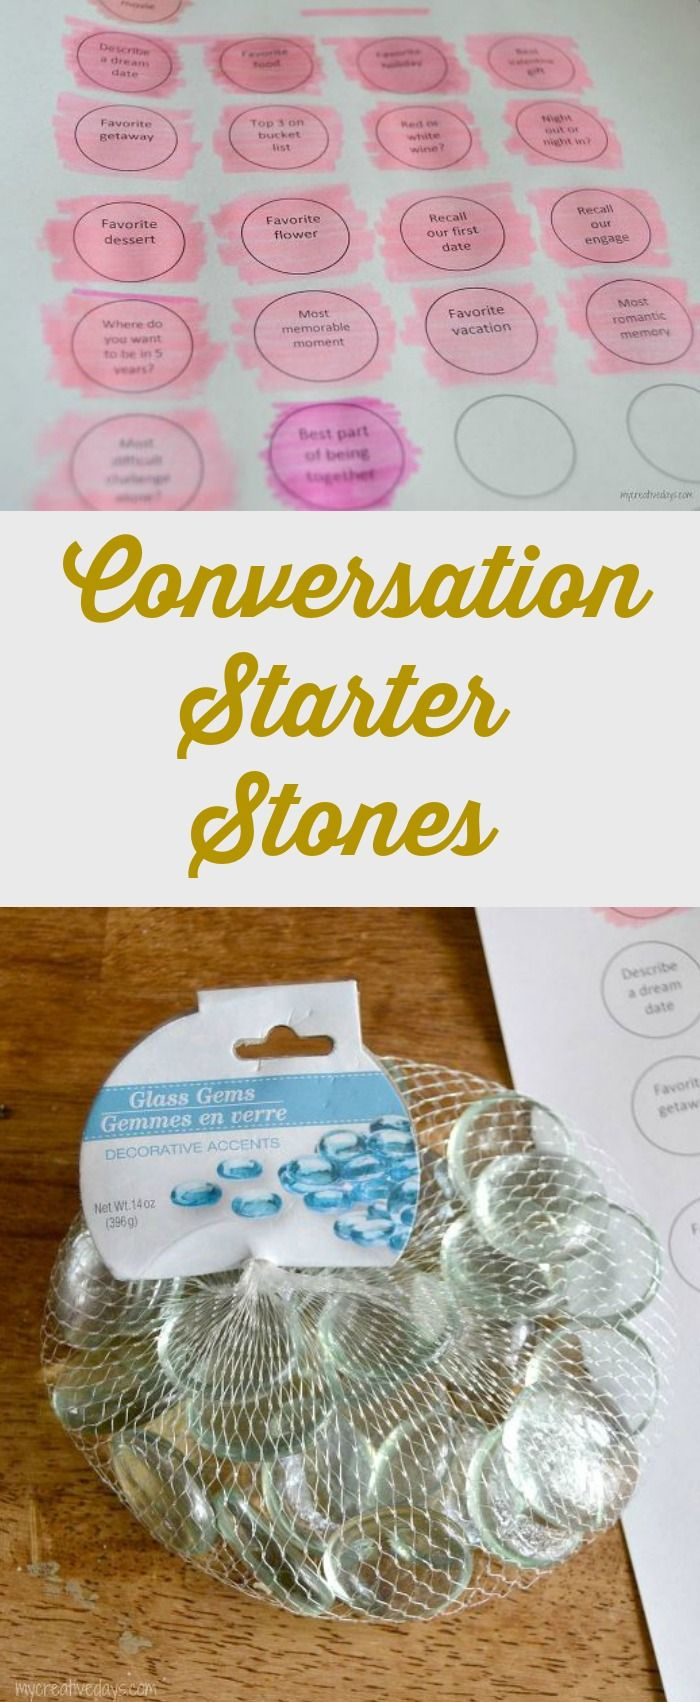 Ice breaker conversation starters